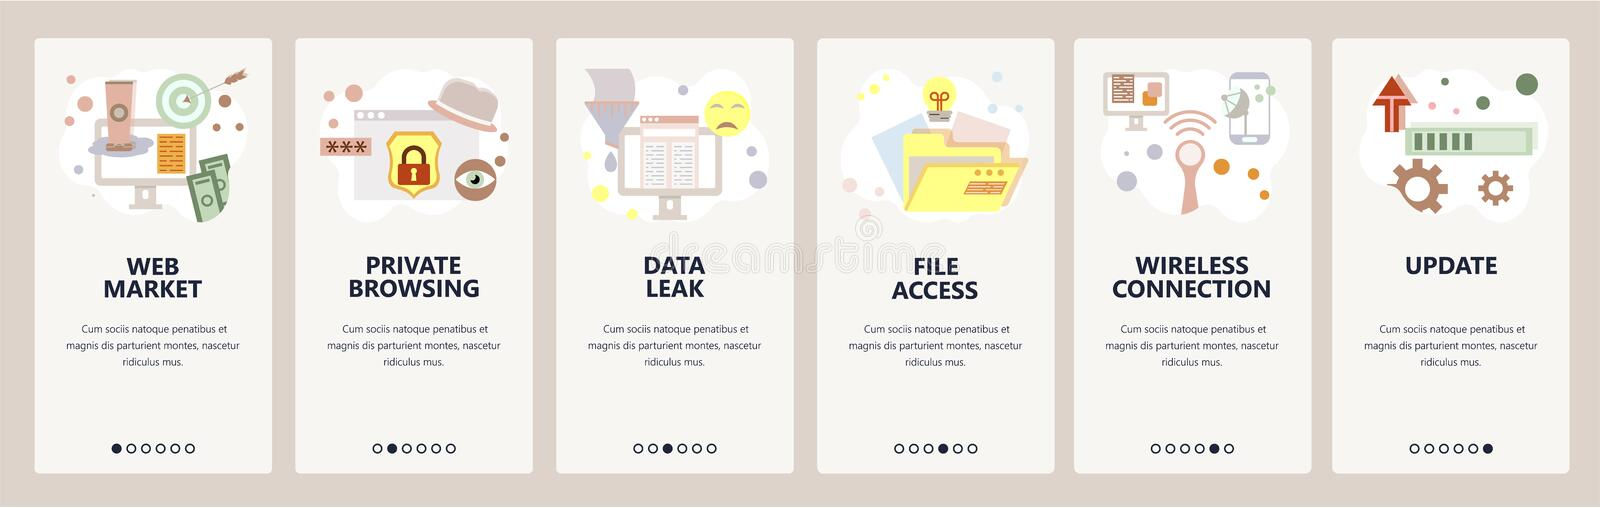 Web site onboarding screens. Cyber security and internet secure access. Privacy and data leak. Menu vector banner. Template for website and mobile app vector illustration